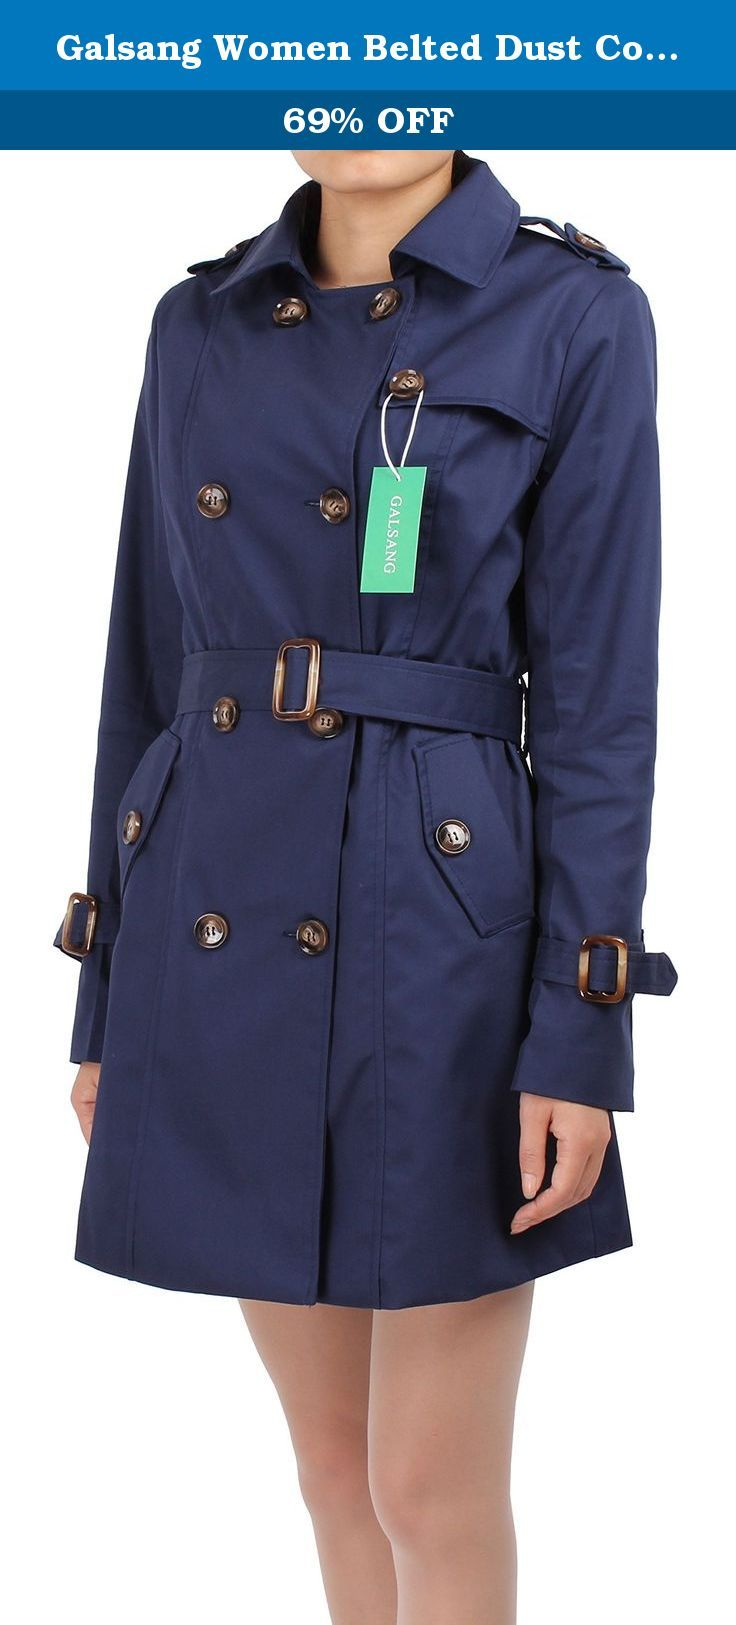 "Galsang Women Belted Dust Coats Navy Blue Cotton Trench Coat#G041 (Petite 12, Navy Blue). We are the team of ""GALSANG"".Galsang is registered by Blueblue Sky company and is exclusively distributed by Blueblue Sky.Galsang trademark is protected by US Trademark Law. Basic information: Brand: Galsang Color: Navy blue Size: petite 4,petite 6,petite 8,petite 12 Satisfaction guaranteed: If you are not satisfied, please don't leave us negative or neutral feedback right away. Please contact us via..."